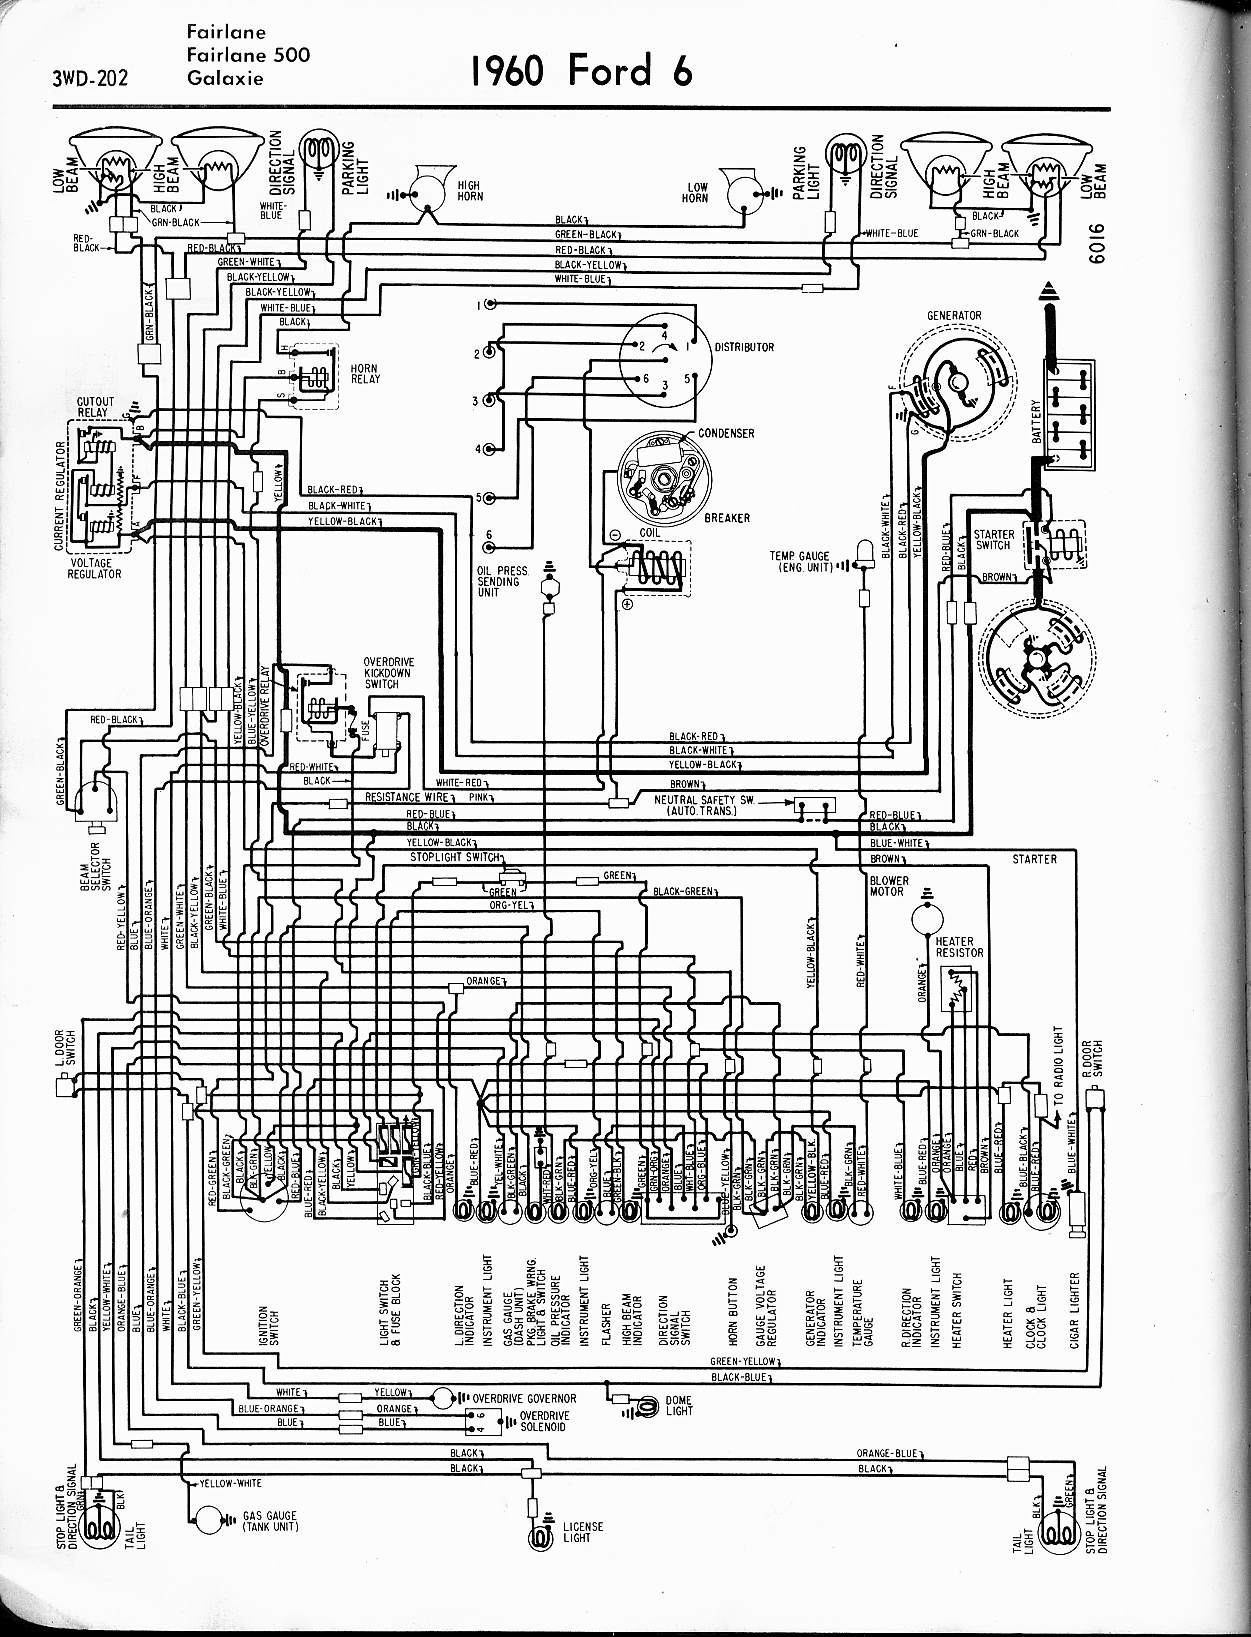 Switch Gm Diagram Wiring